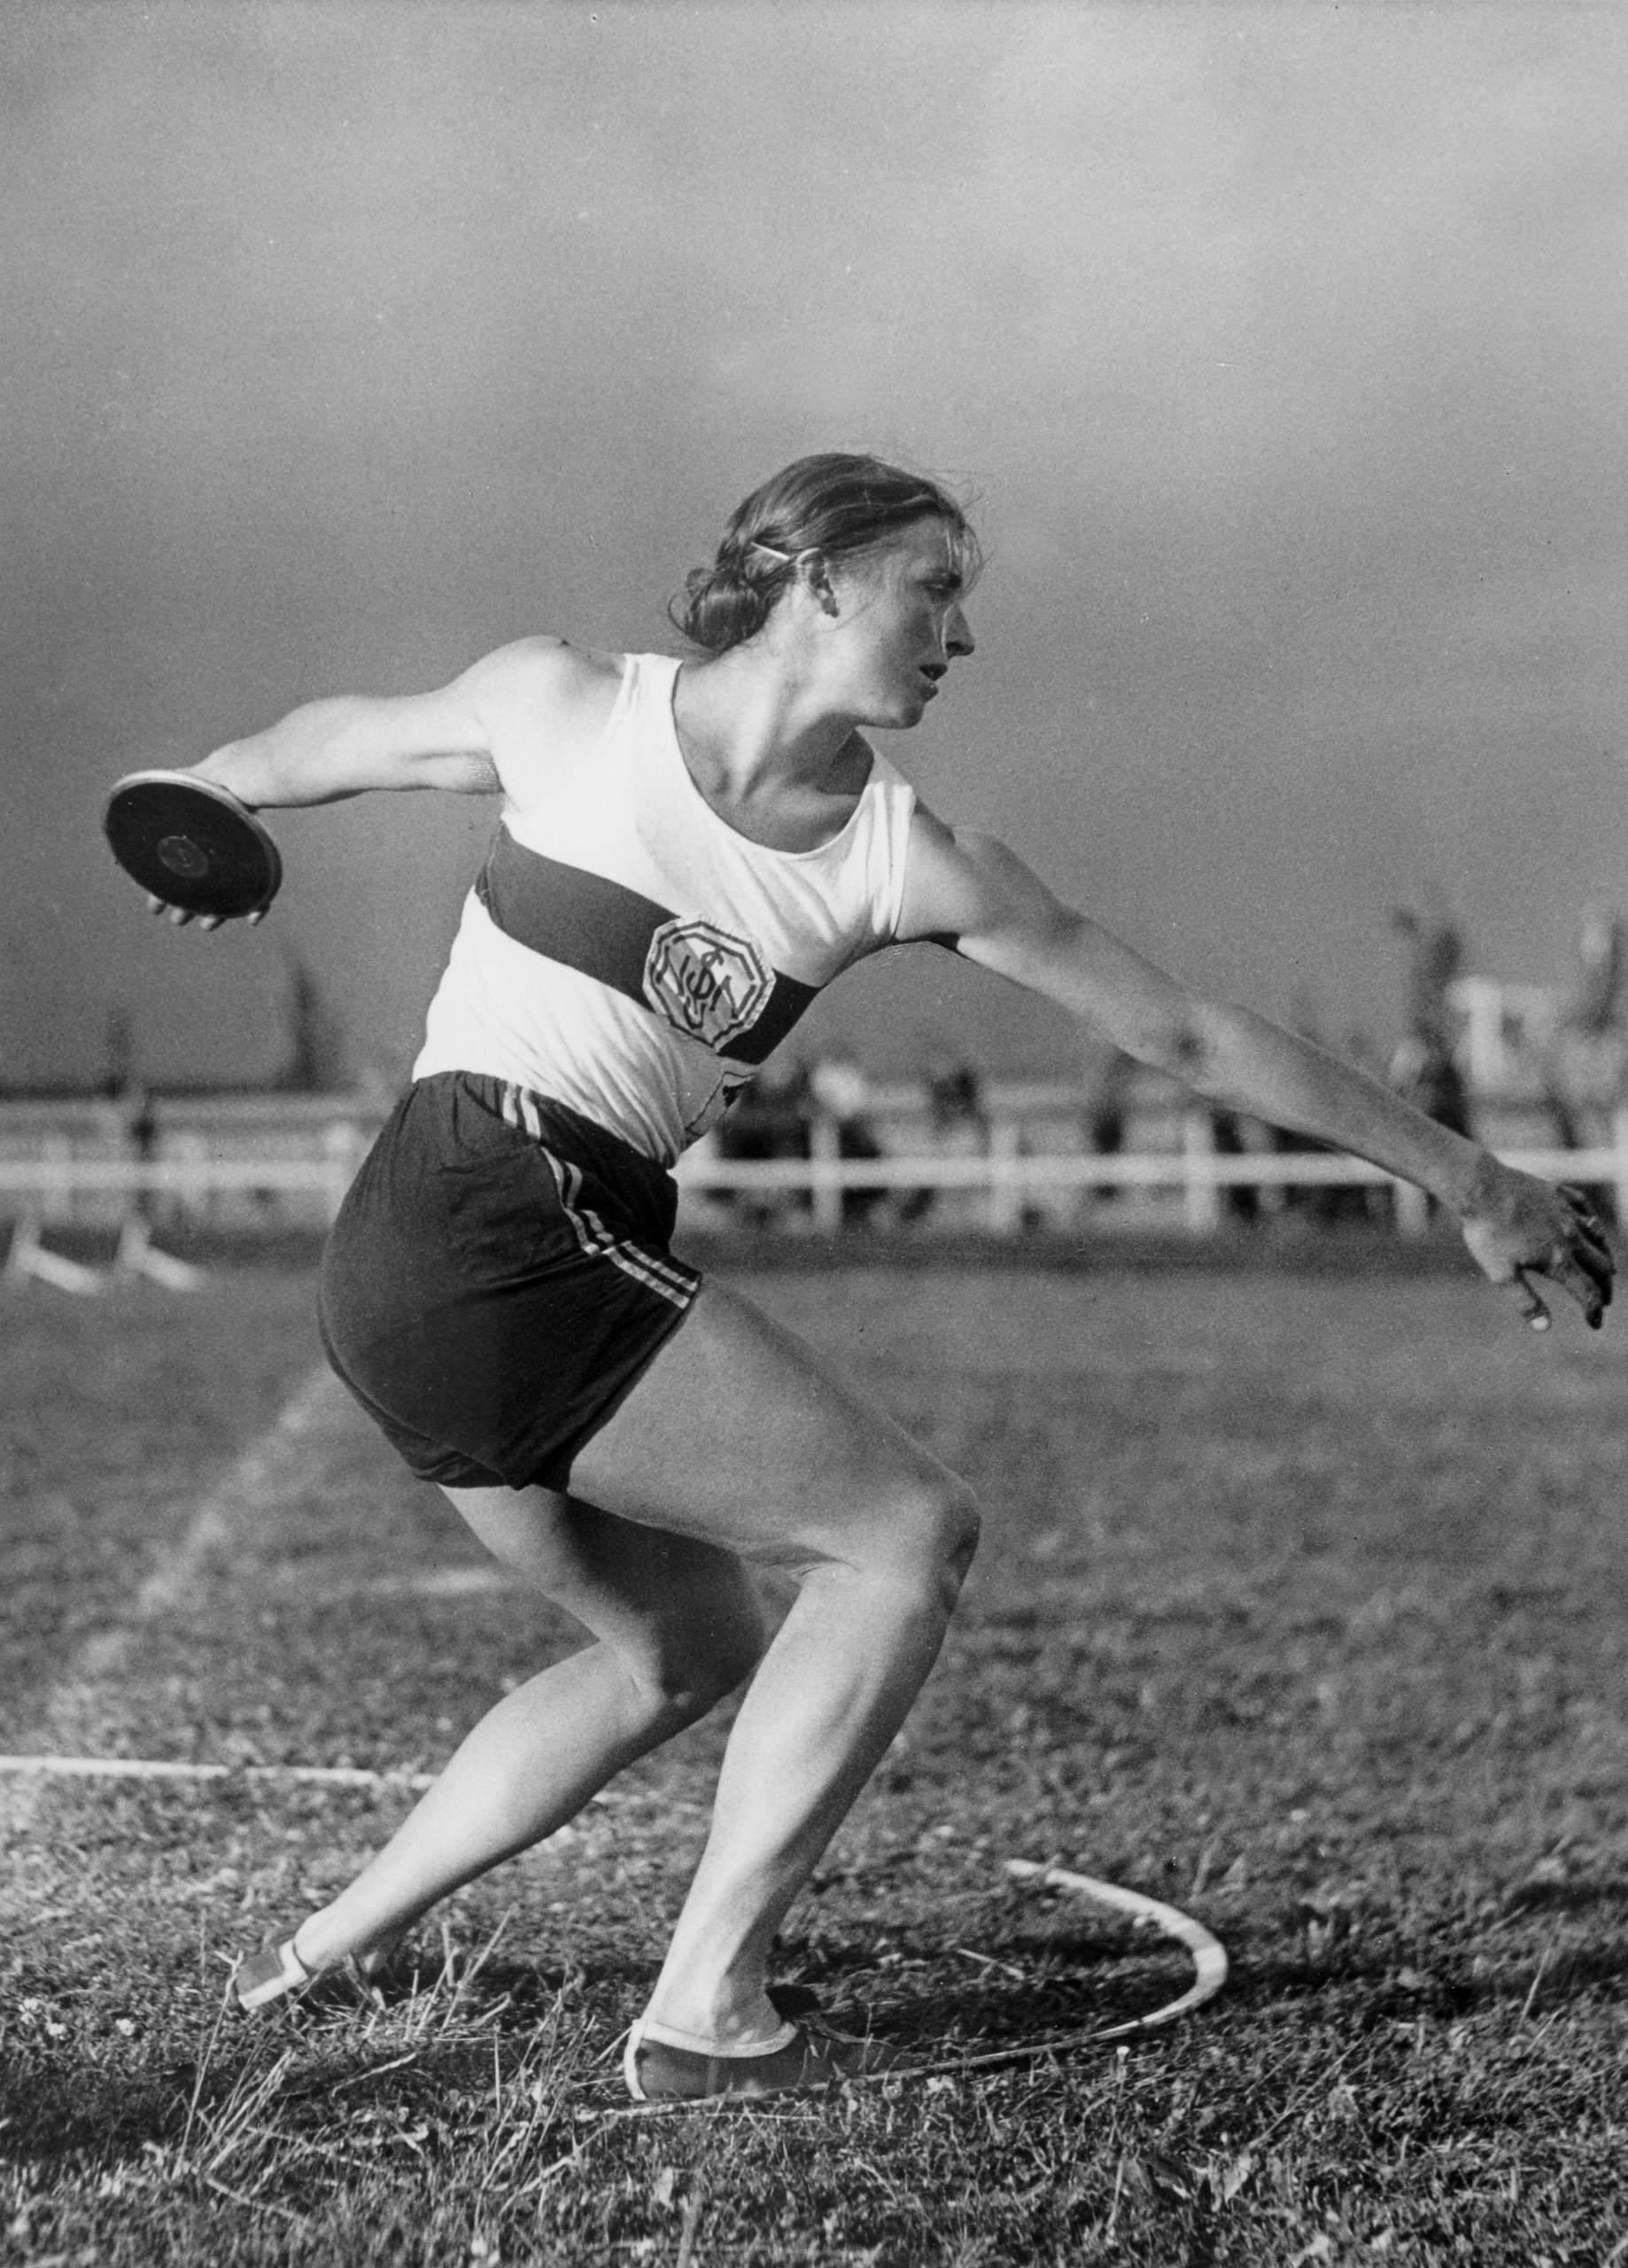 Gisela Mauermayer, of Germany, winner of the gold medal in the Discus event at the 1936 Olympic Games.